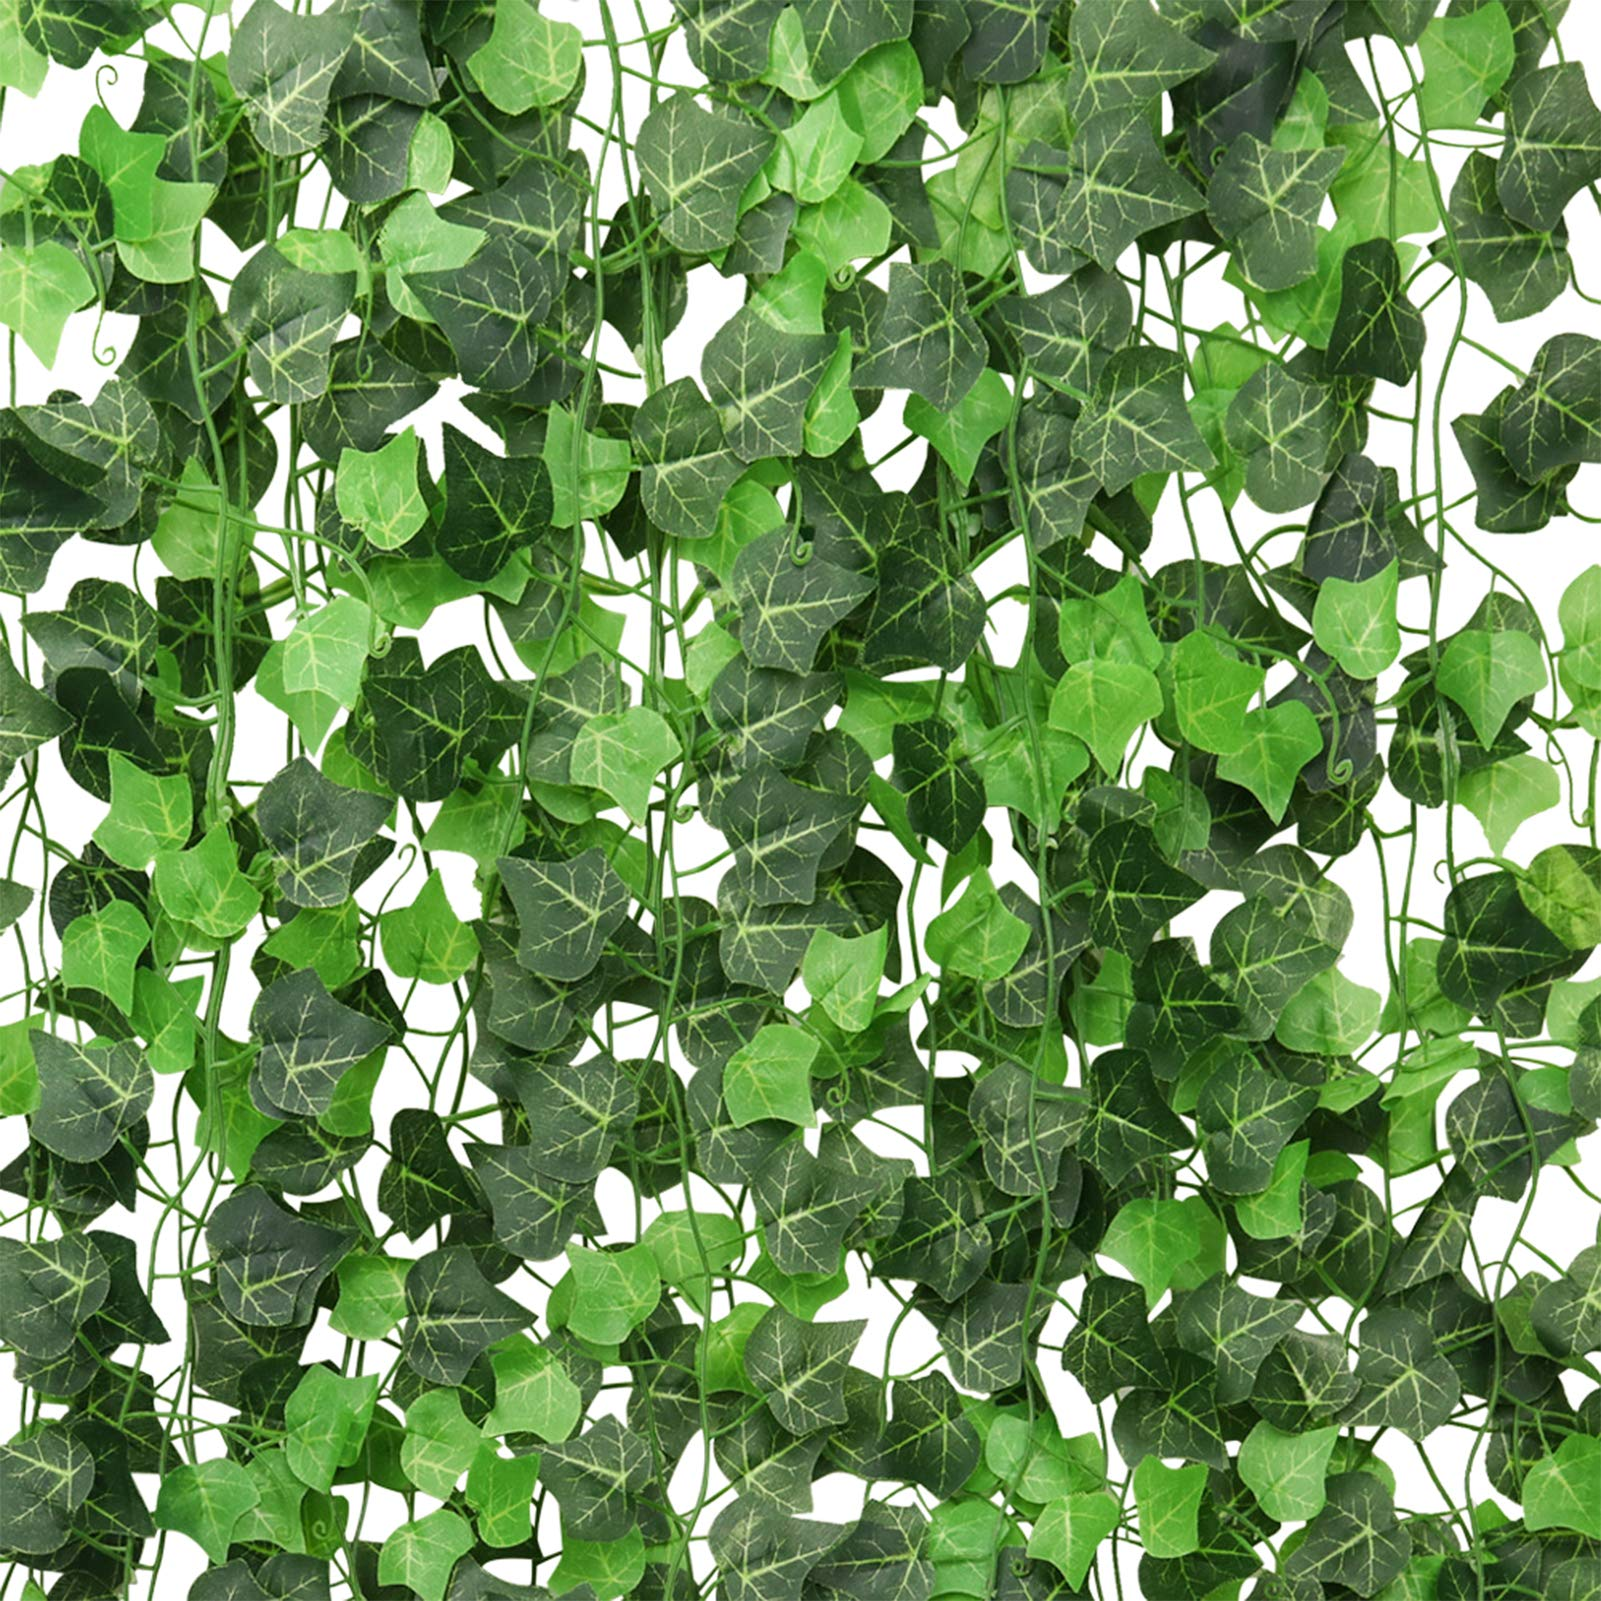 ElaDeco 94 ft 12 Pack Artificial Ivy Garland Vine,Plastic Ivy Vines Fake Ivy Garland for Wedding Party Decoration Garden Wall Greenery Decoration